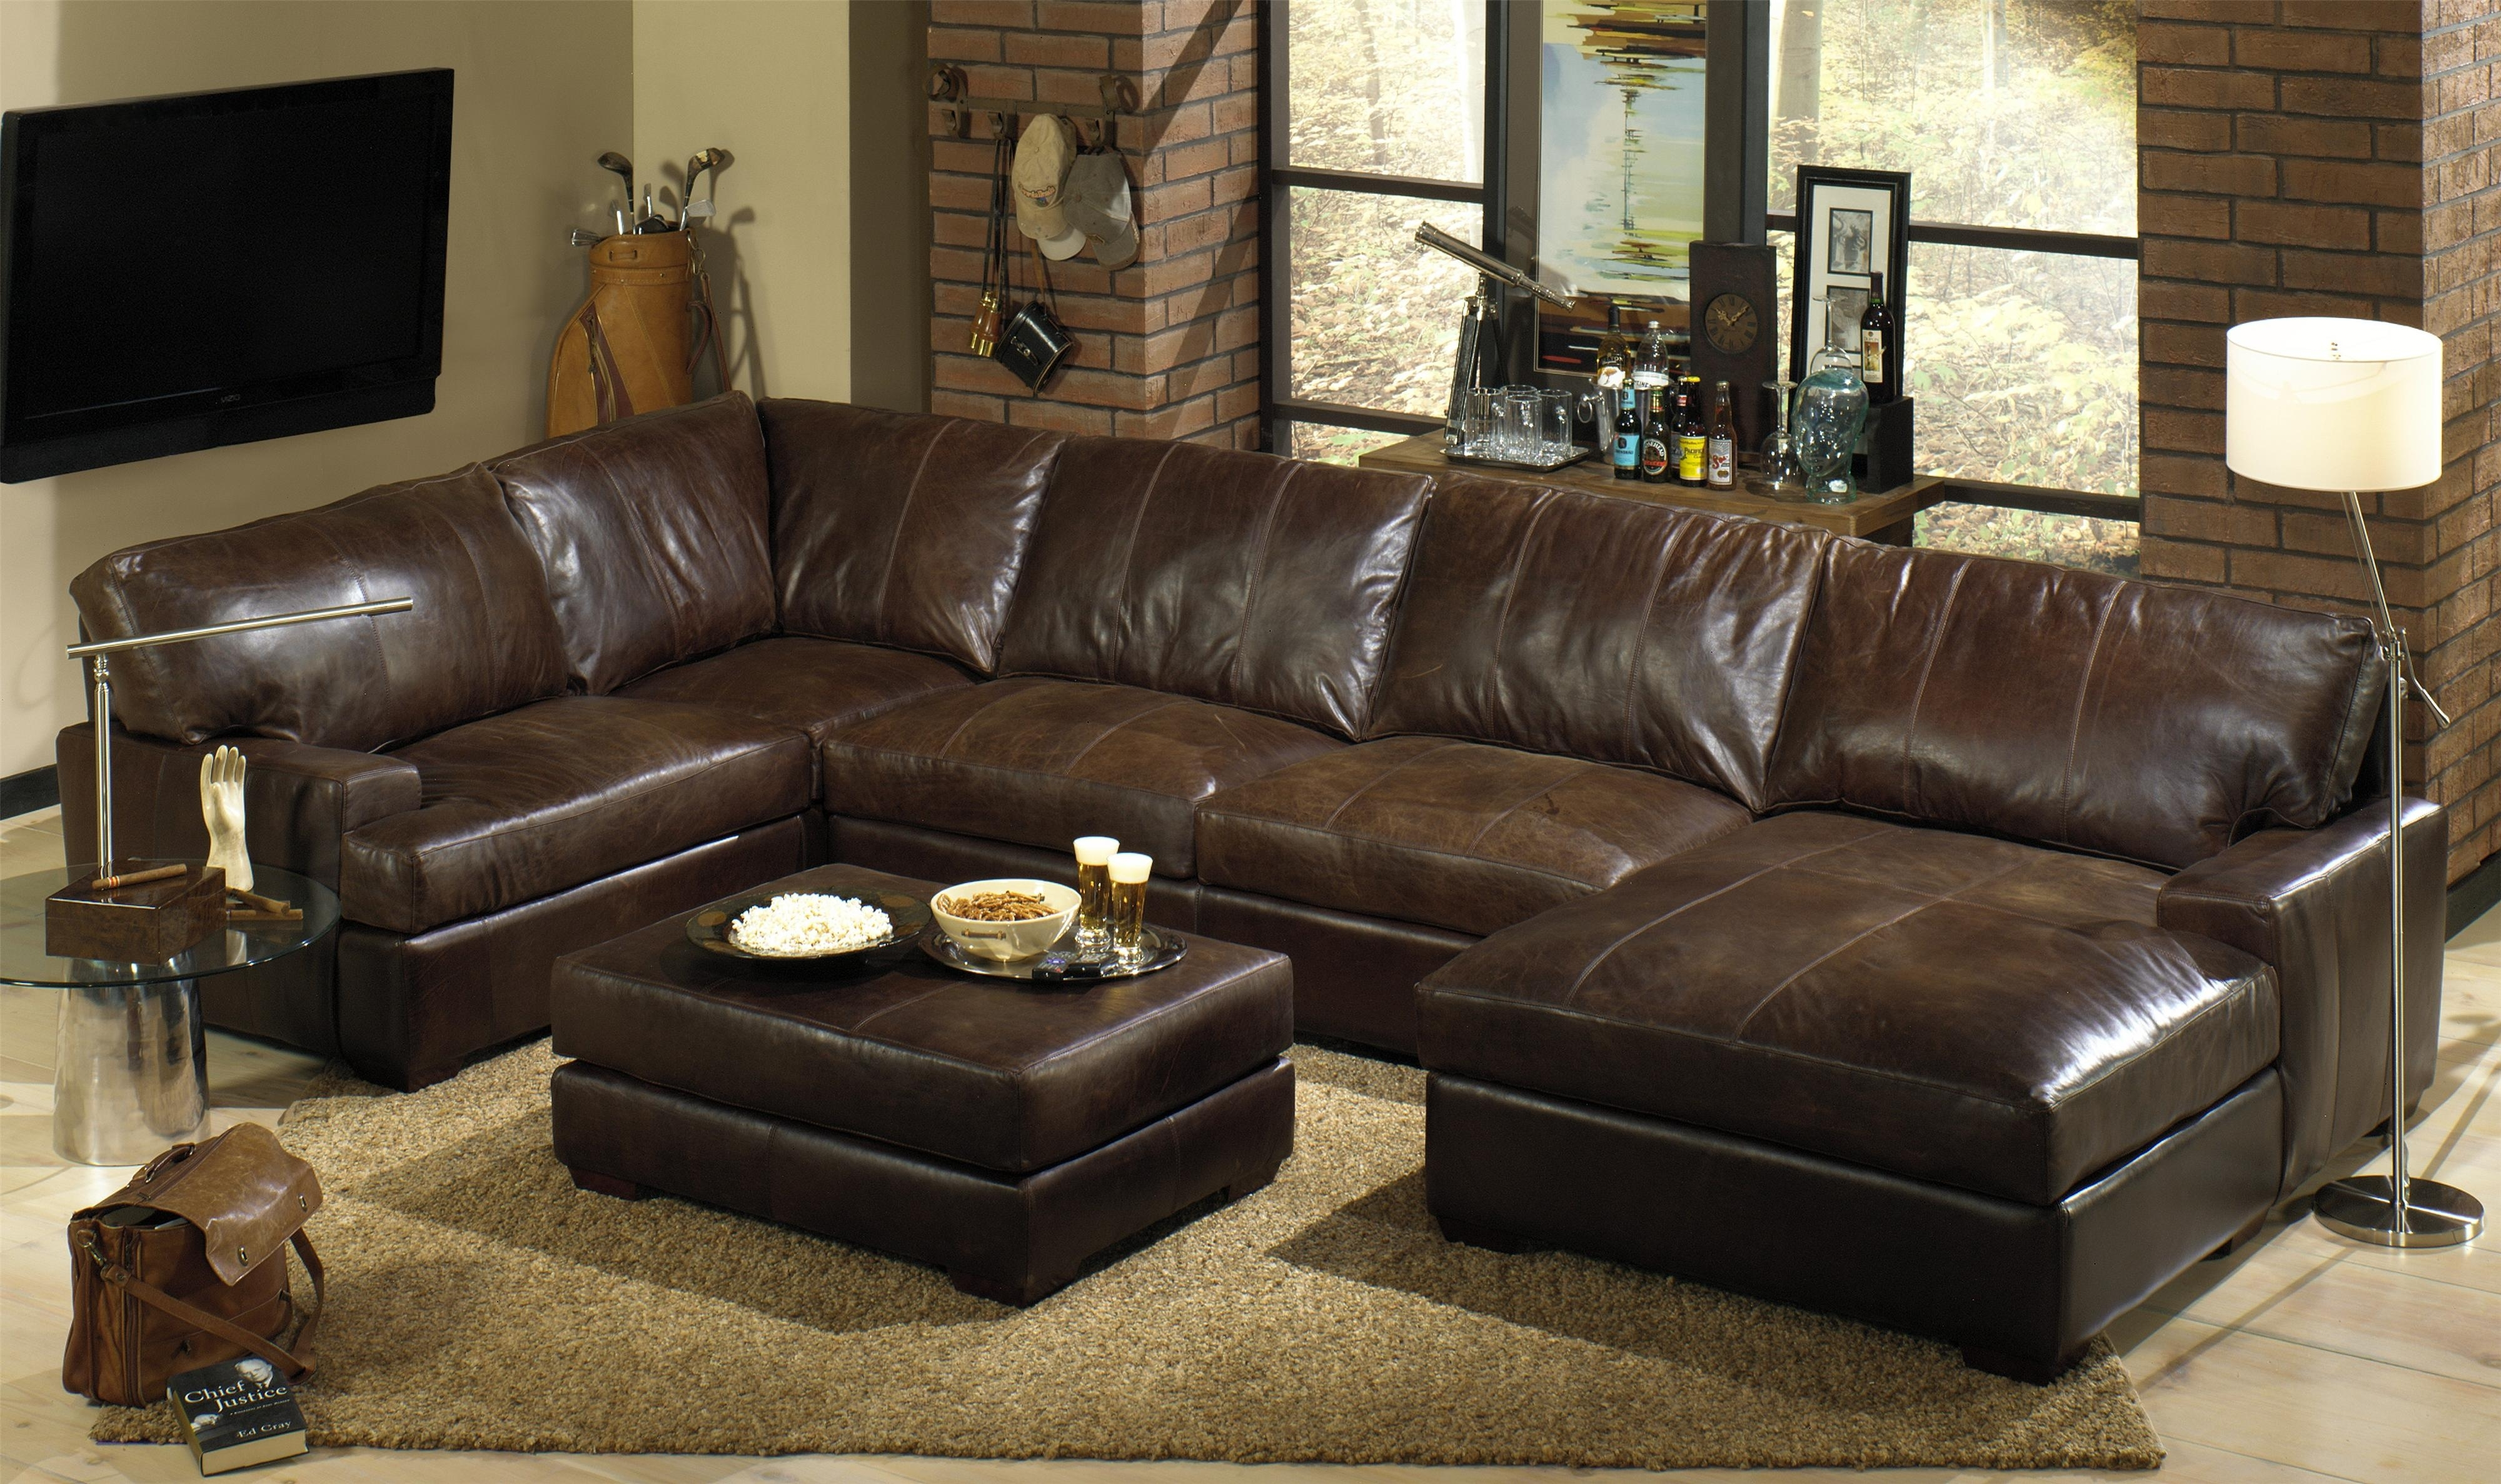 Sectional Sofa Sleepers For Better Sleep Quality And Comfort | Homesfeed With Regard To High End Leather Sectional Sofas (Image 9 of 10)